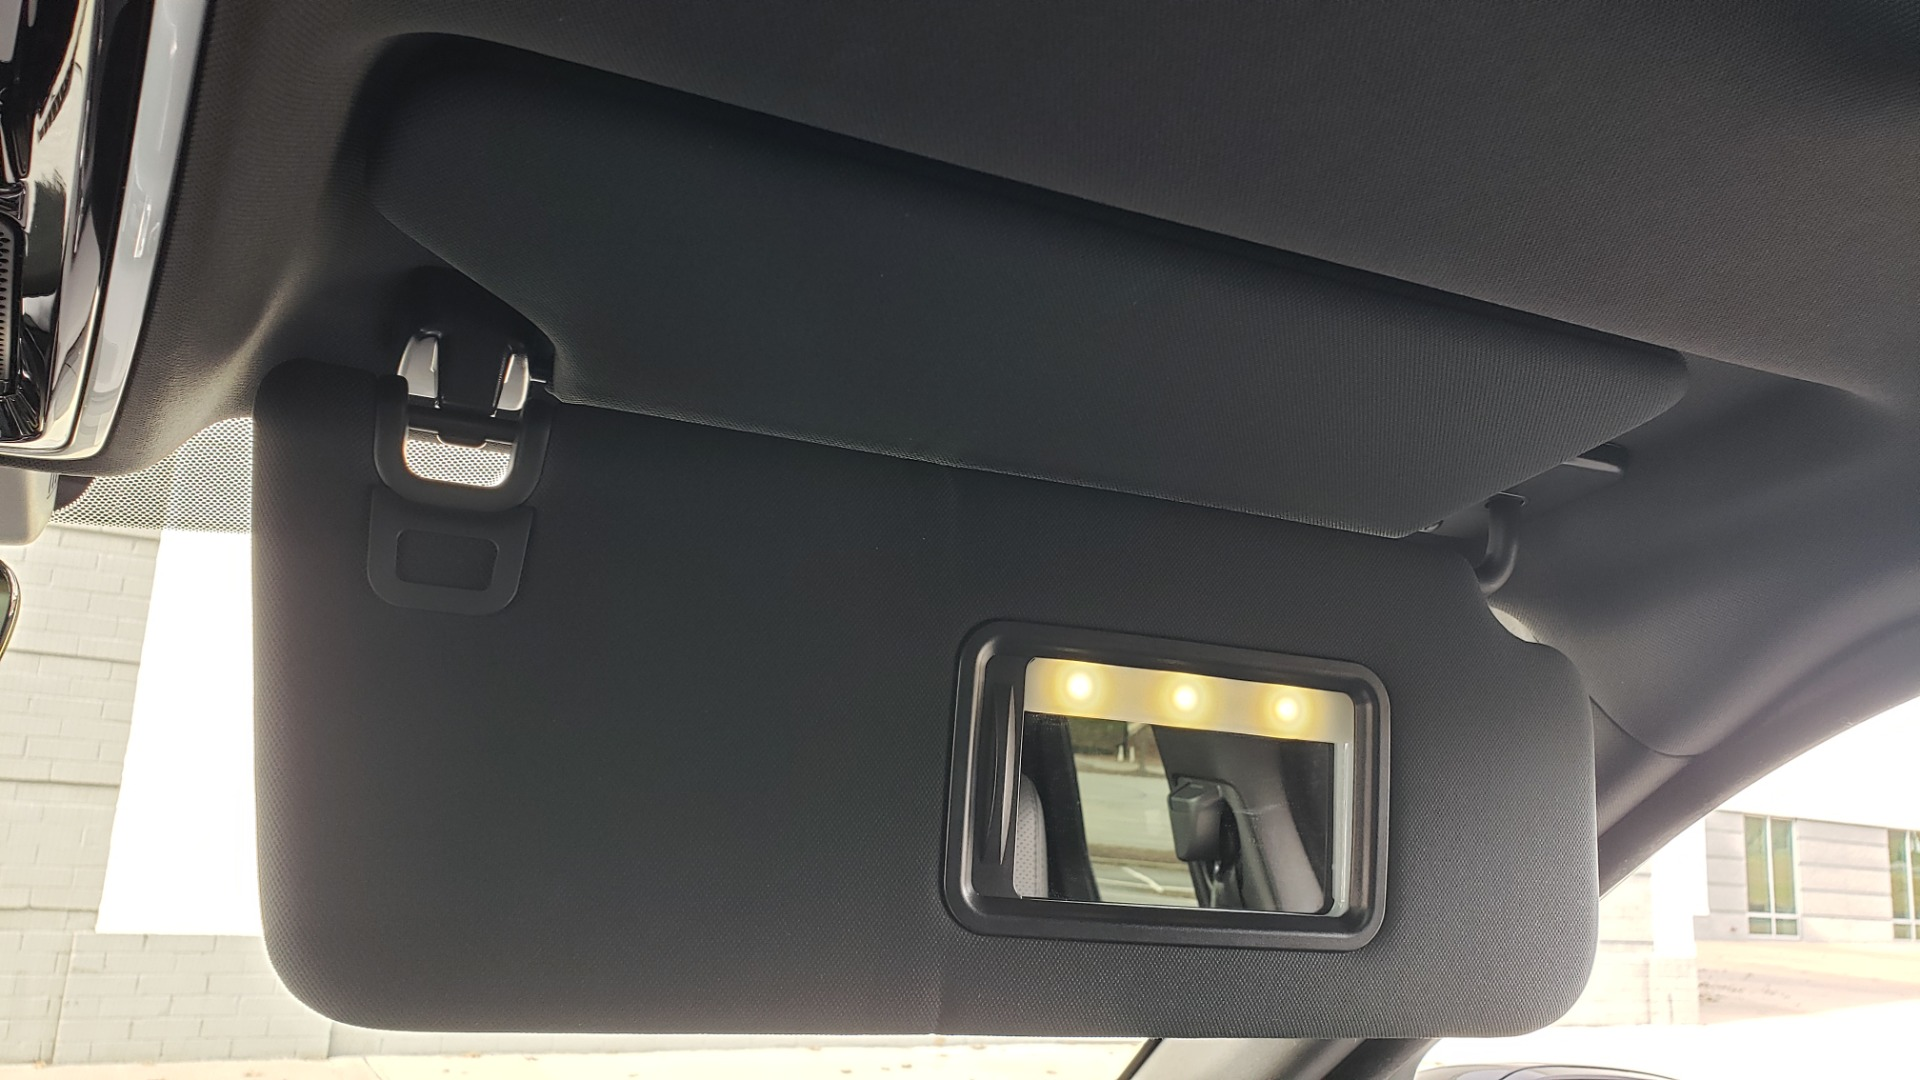 Used 2017 Land Rover RANGE ROVER SPORT HSE DYNAMIC / SC V6 / NAV / MERIDIAN / PANO-ROOF / REARVIEW for sale Sold at Formula Imports in Charlotte NC 28227 154